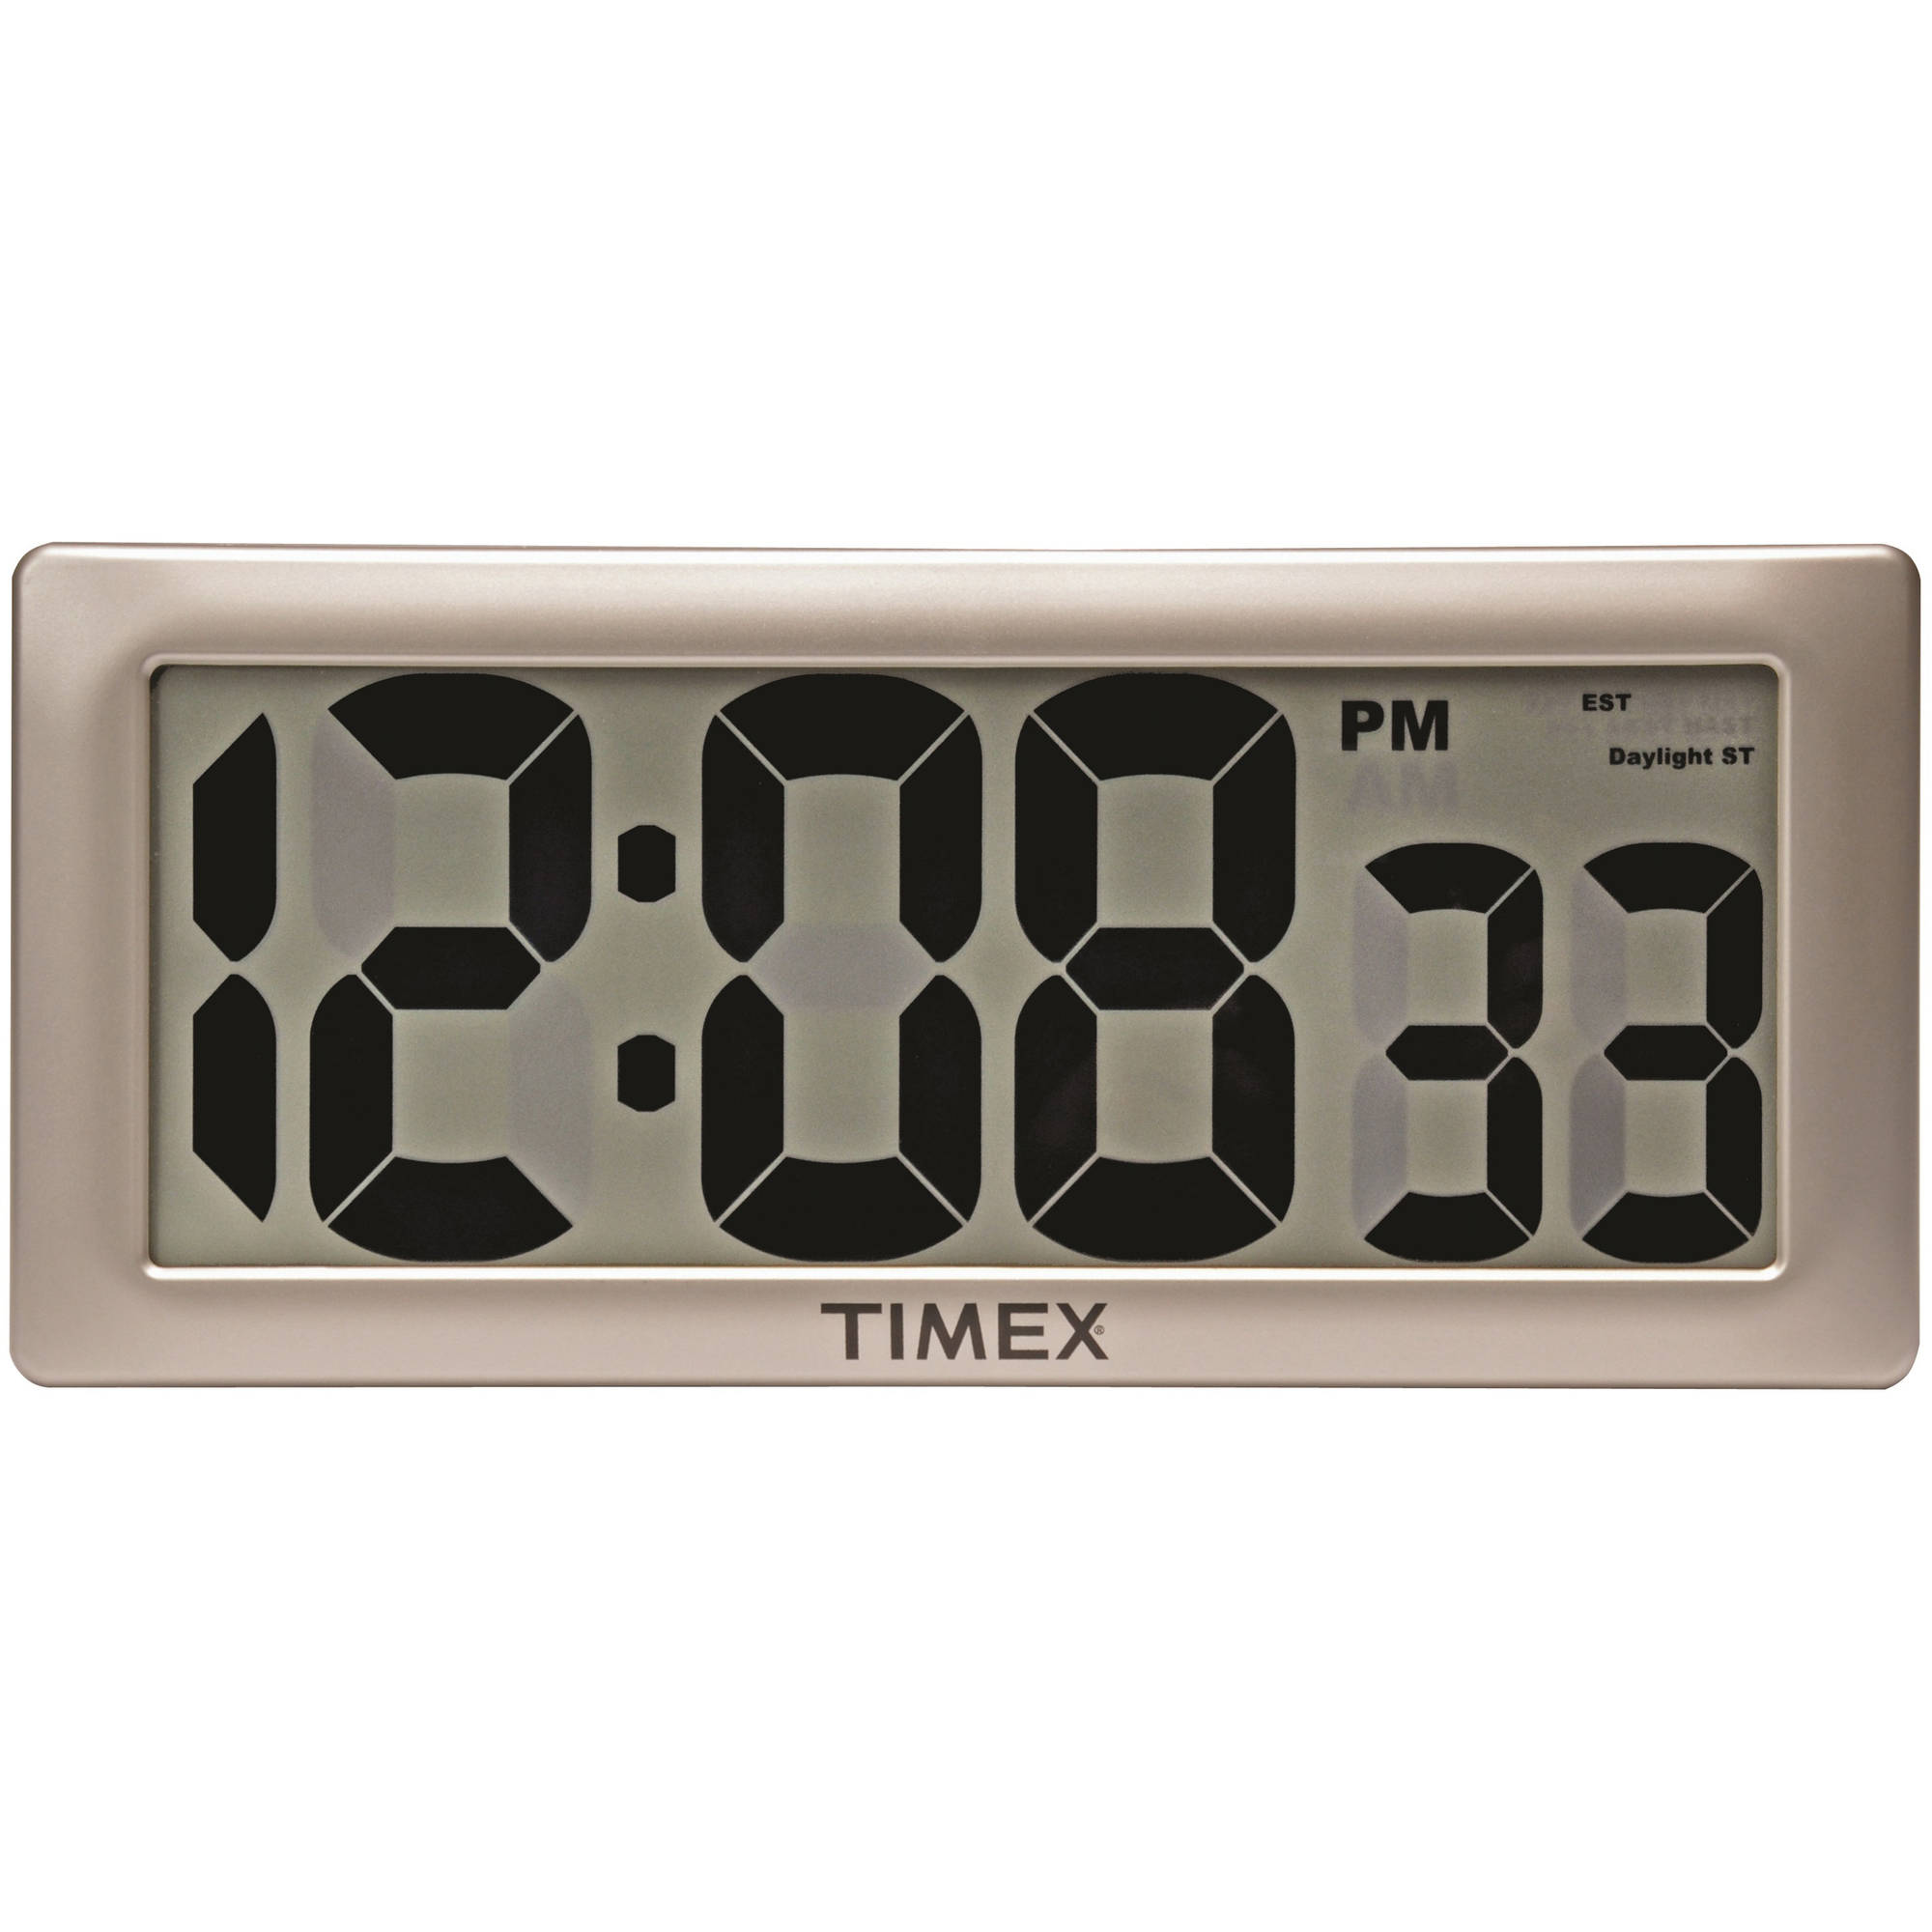 "AcuRite 13.5"" Timex Intelli-Time Extra-Large Digital Clock"